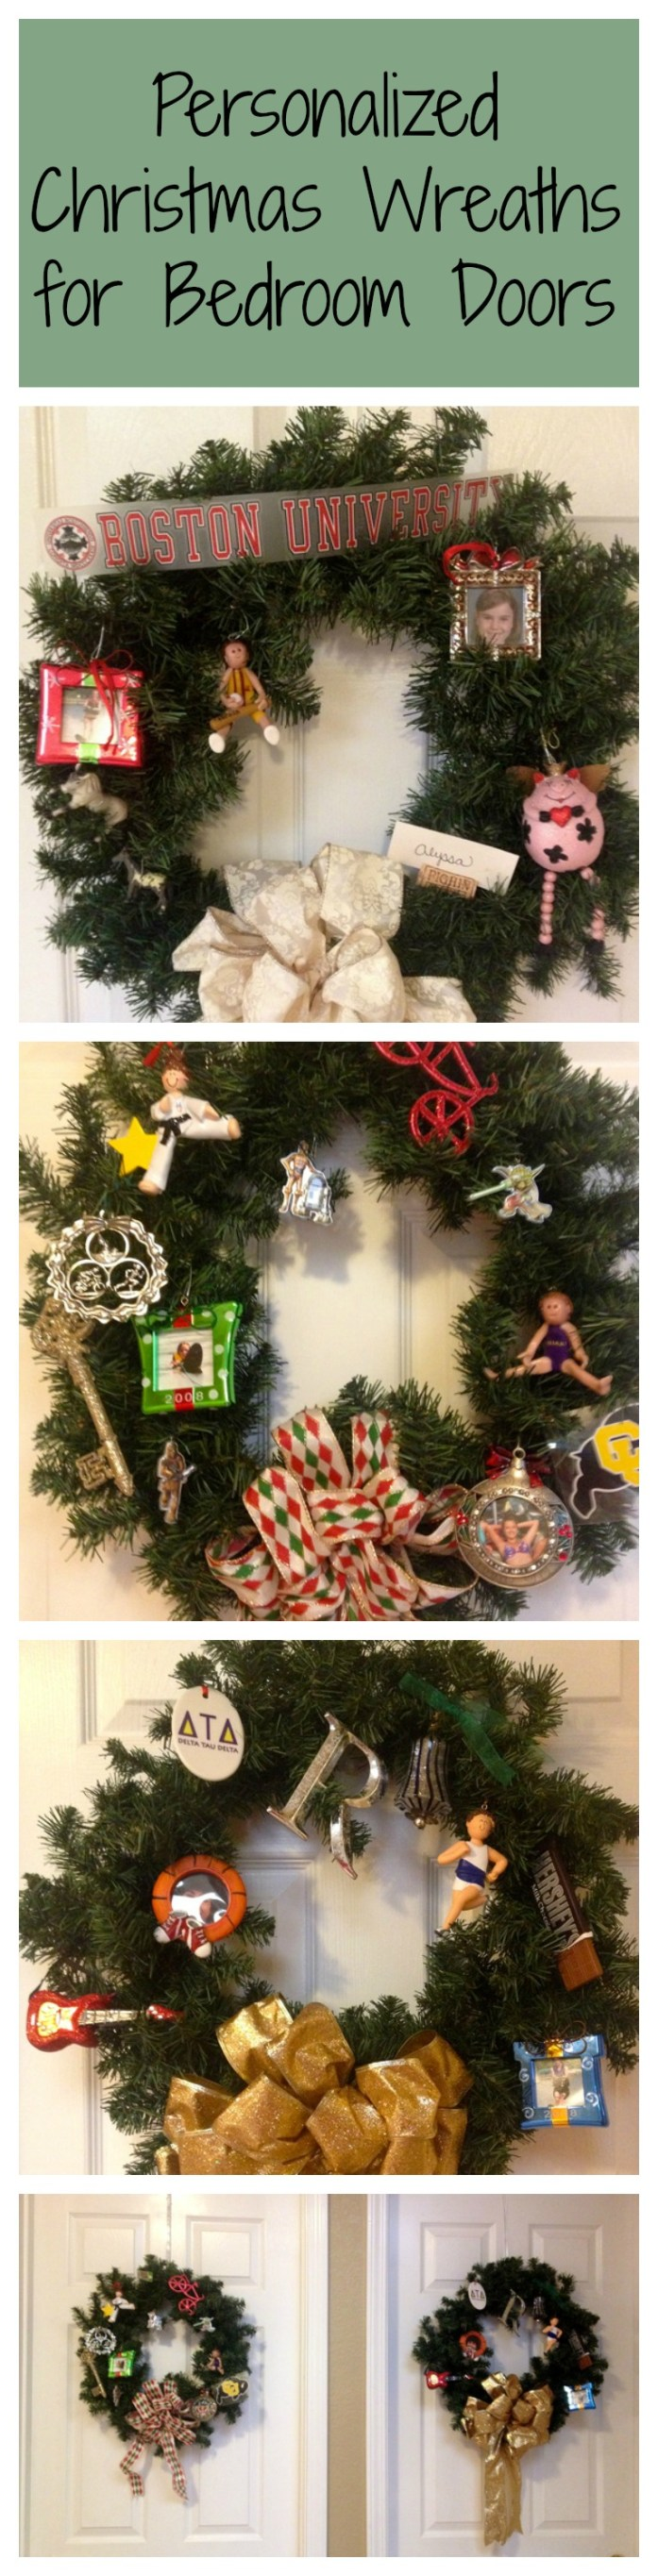 Personalized Christmas Wreaths for Bedroom Doors - Creating new traditions in our blended family